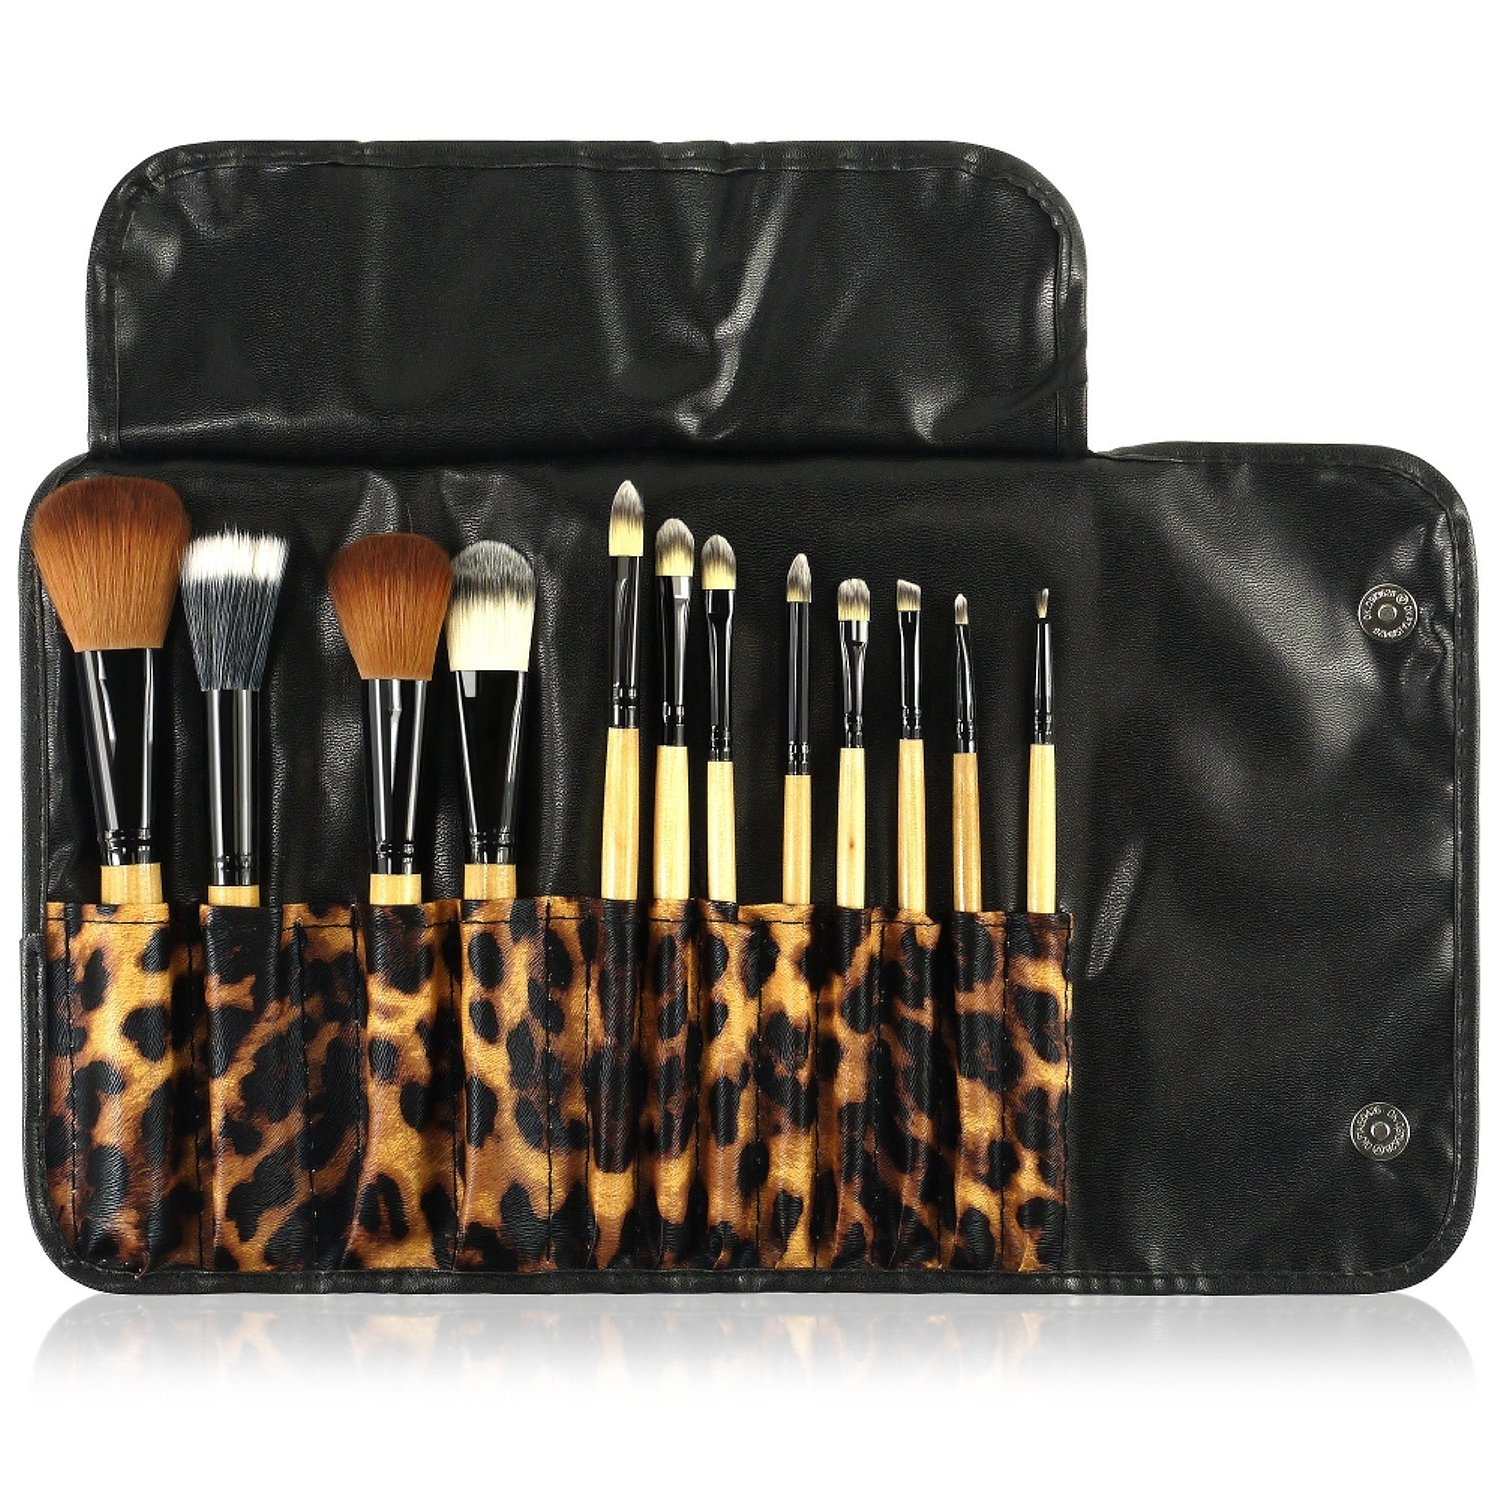 Zodaca [10 Pcs-Set] Professional Makeup Unicorn Brush Set with Spiral Handle & Rainbow Bristles - Including Foundation Blending Blush Concealer Eye Face Liquid Powder Cream Cosmetics Brushes Kit eForCity